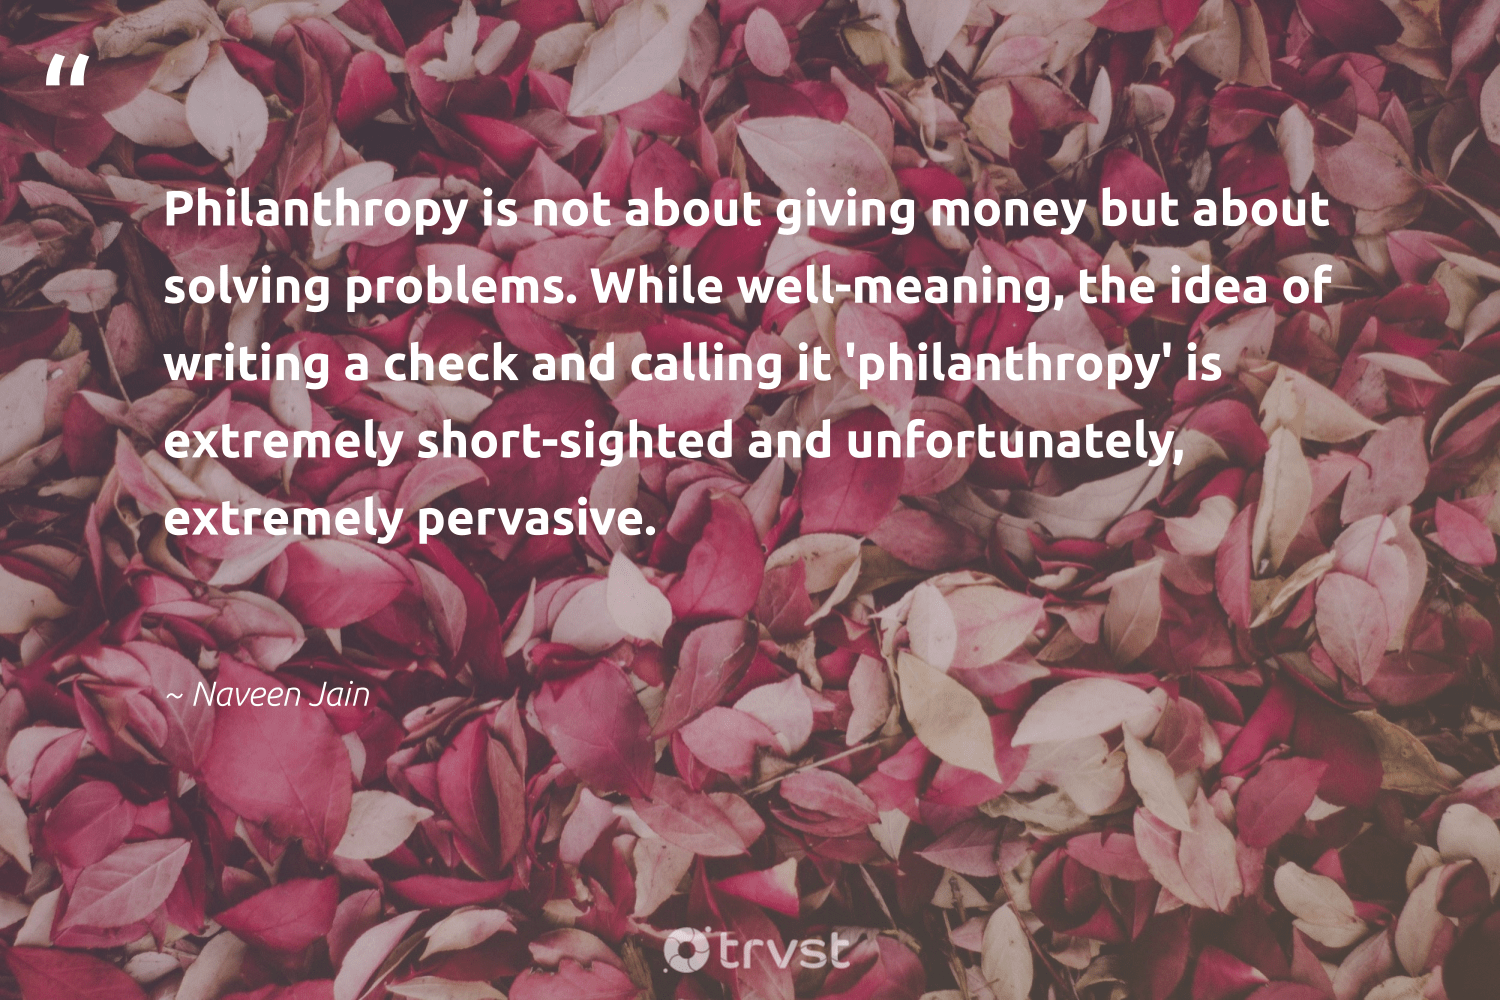 """Philanthropy is not about giving money but about solving problems. While well-meaning, the idea of writing a check and calling it 'philanthropy' is extremely short-sighted and unfortunately, extremely pervasive.""  - Naveen Jain #trvst #quotes #philanthropy #philanthropic #giveforthefuture #changemakers #takeaction #itscooltobekind #togetherwecan #gogreen #collectiveaction #dosomething"